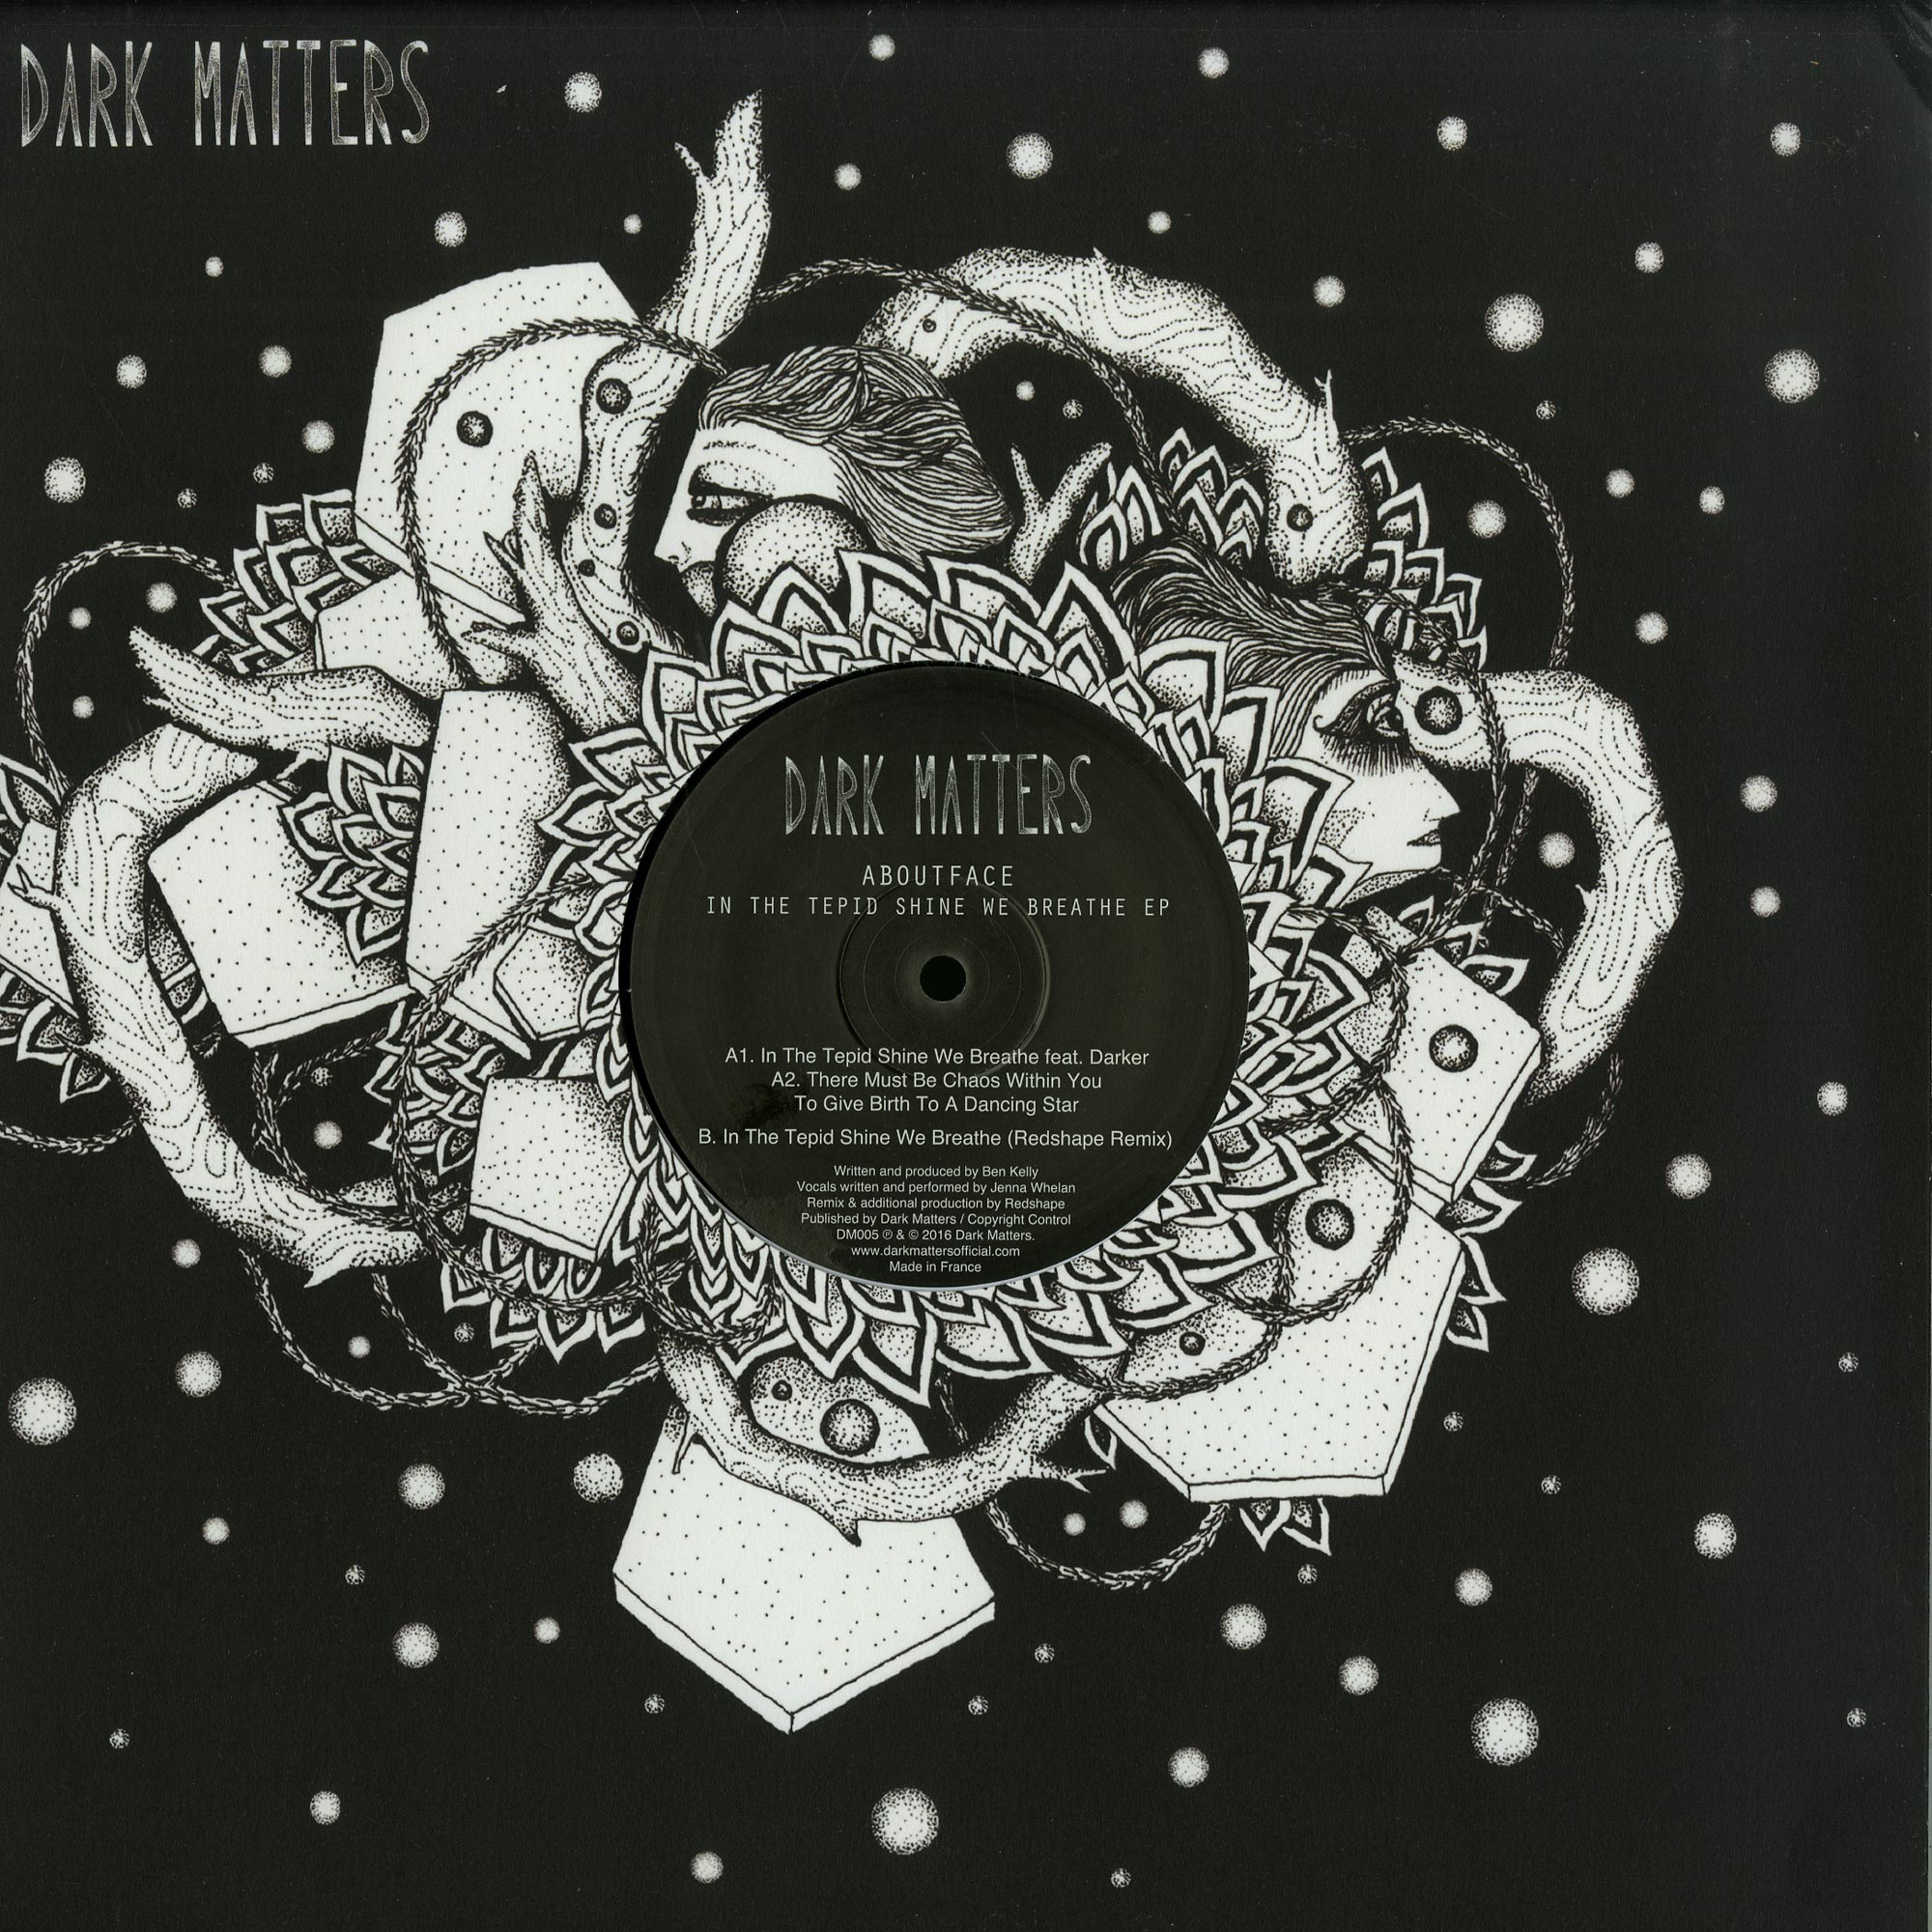 Aboutface - IN THE TEPID SHINE WE BREATH EP